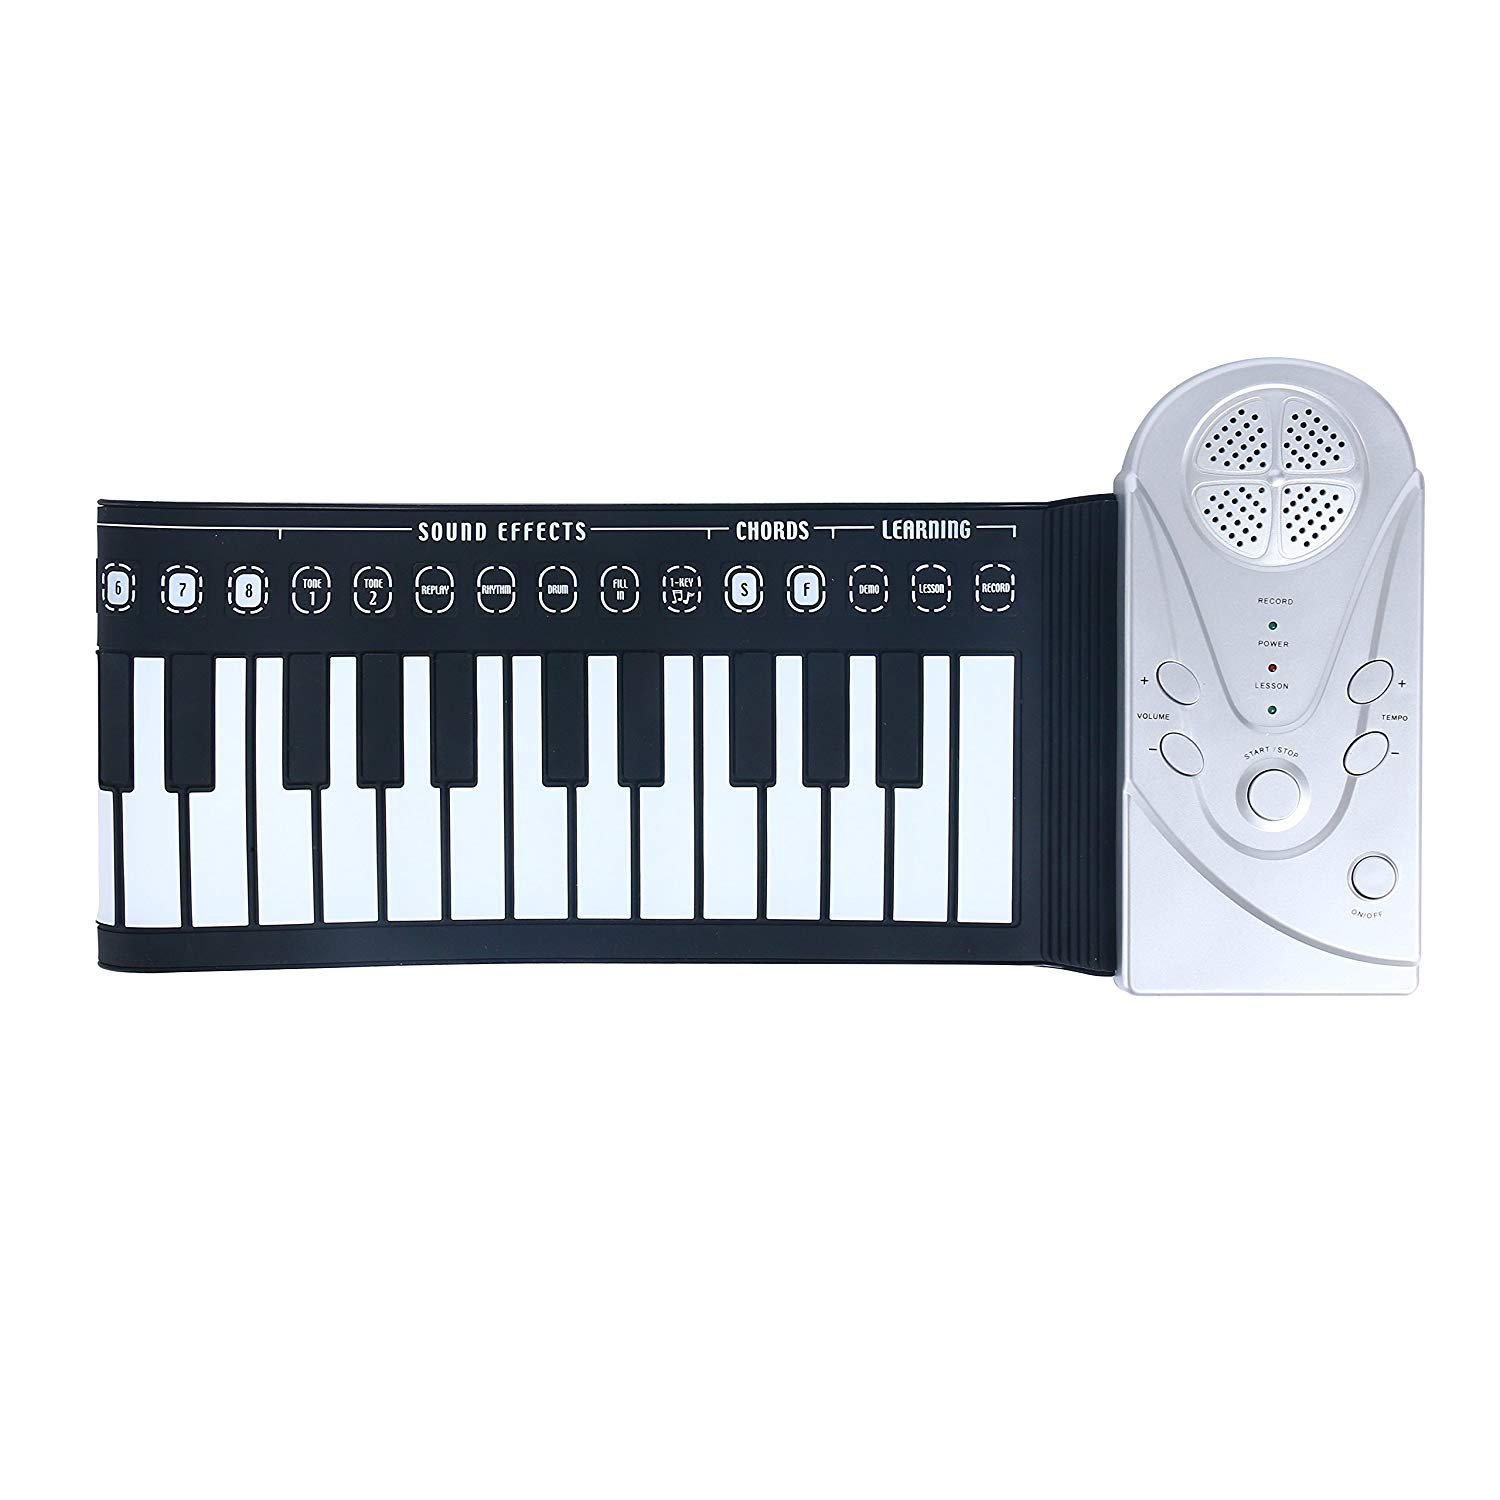 8milelake Portable Electronic Music Keyboard Piano, 49key Soft Flexible Children Kids Adults music keybord, Musical Teaching Keyboards for Beginner w/speaker (soft keyboard) freebirdtrading ZY0209